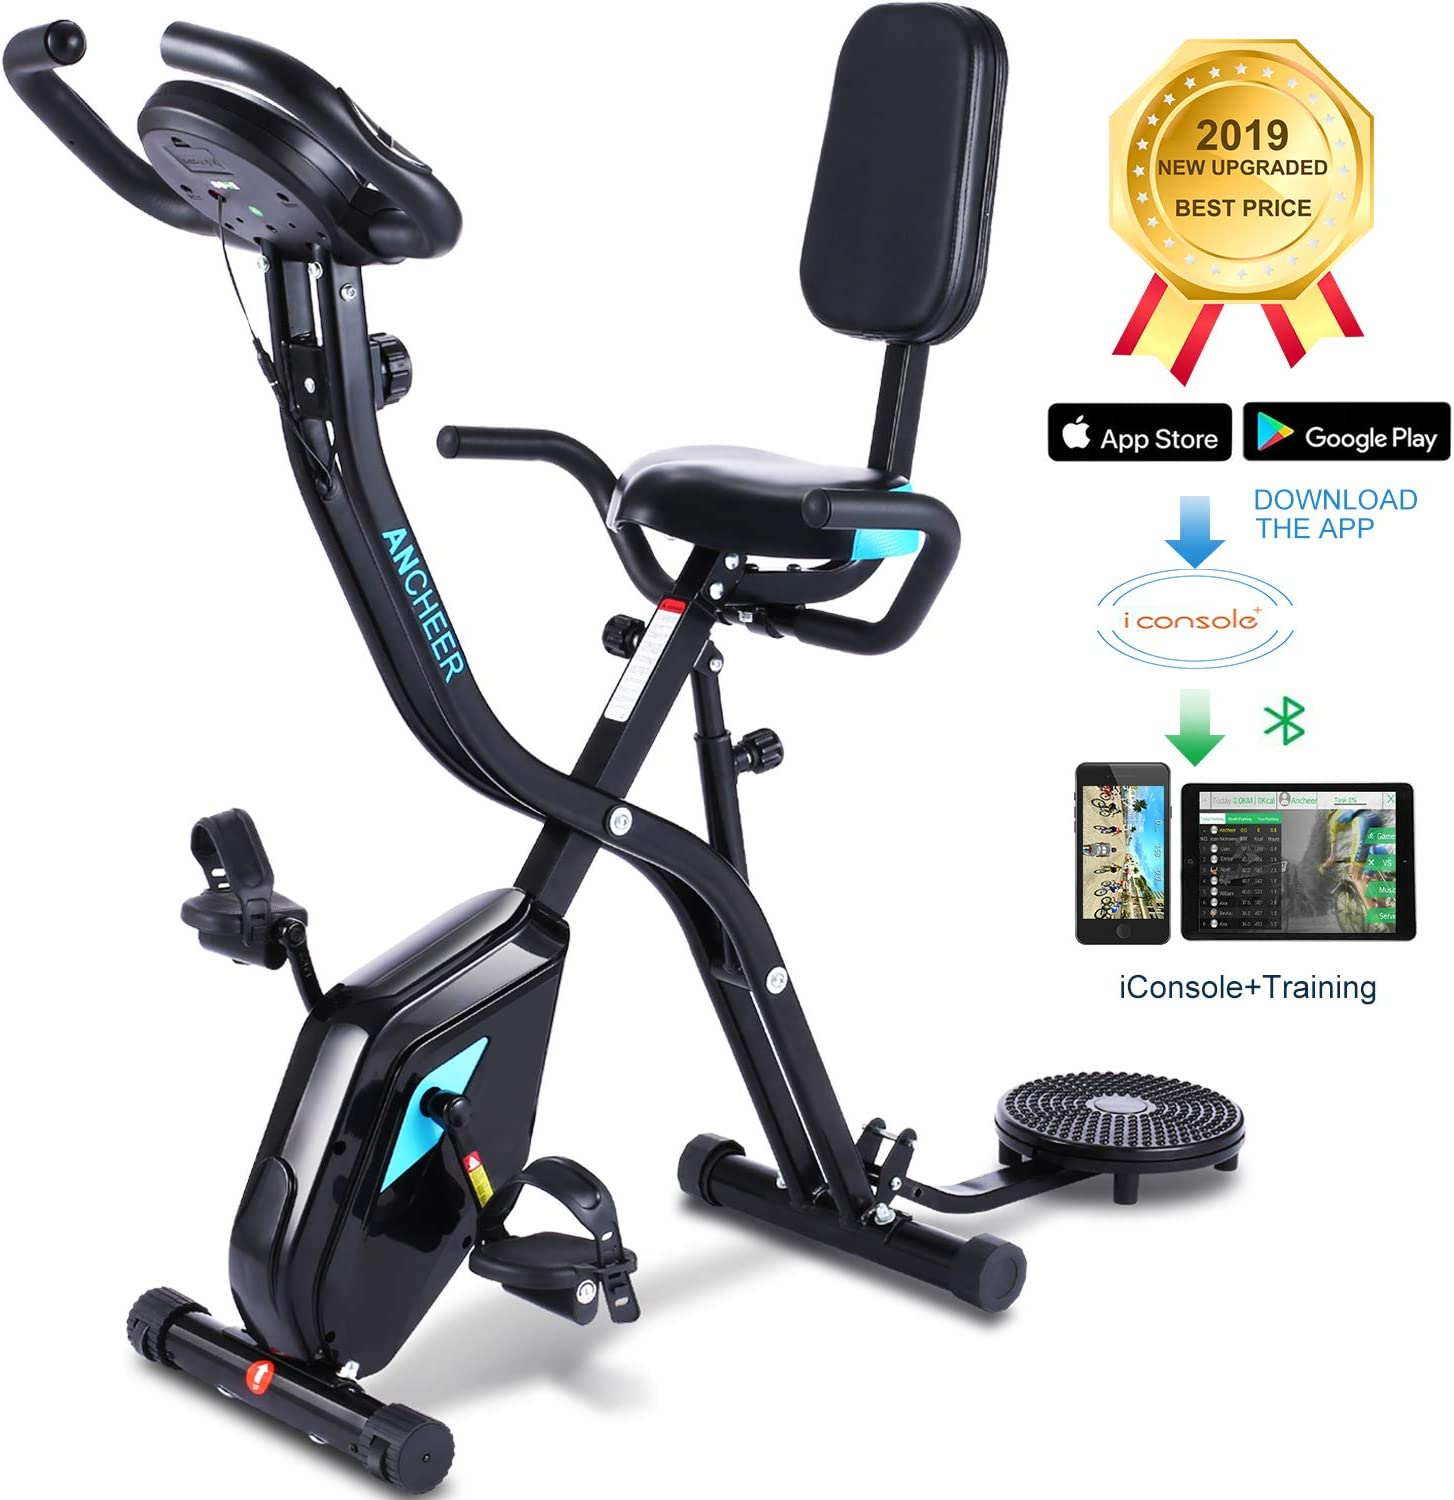 Zafuar Folding Recumbent Exercise Bike,3-in-1 Bicycle Machine Indoor Stationary Slim Bike with Twister Plate APP Program Digital Monitor 10Level Adjustable Magnetic Resistancefor for Home Workout.